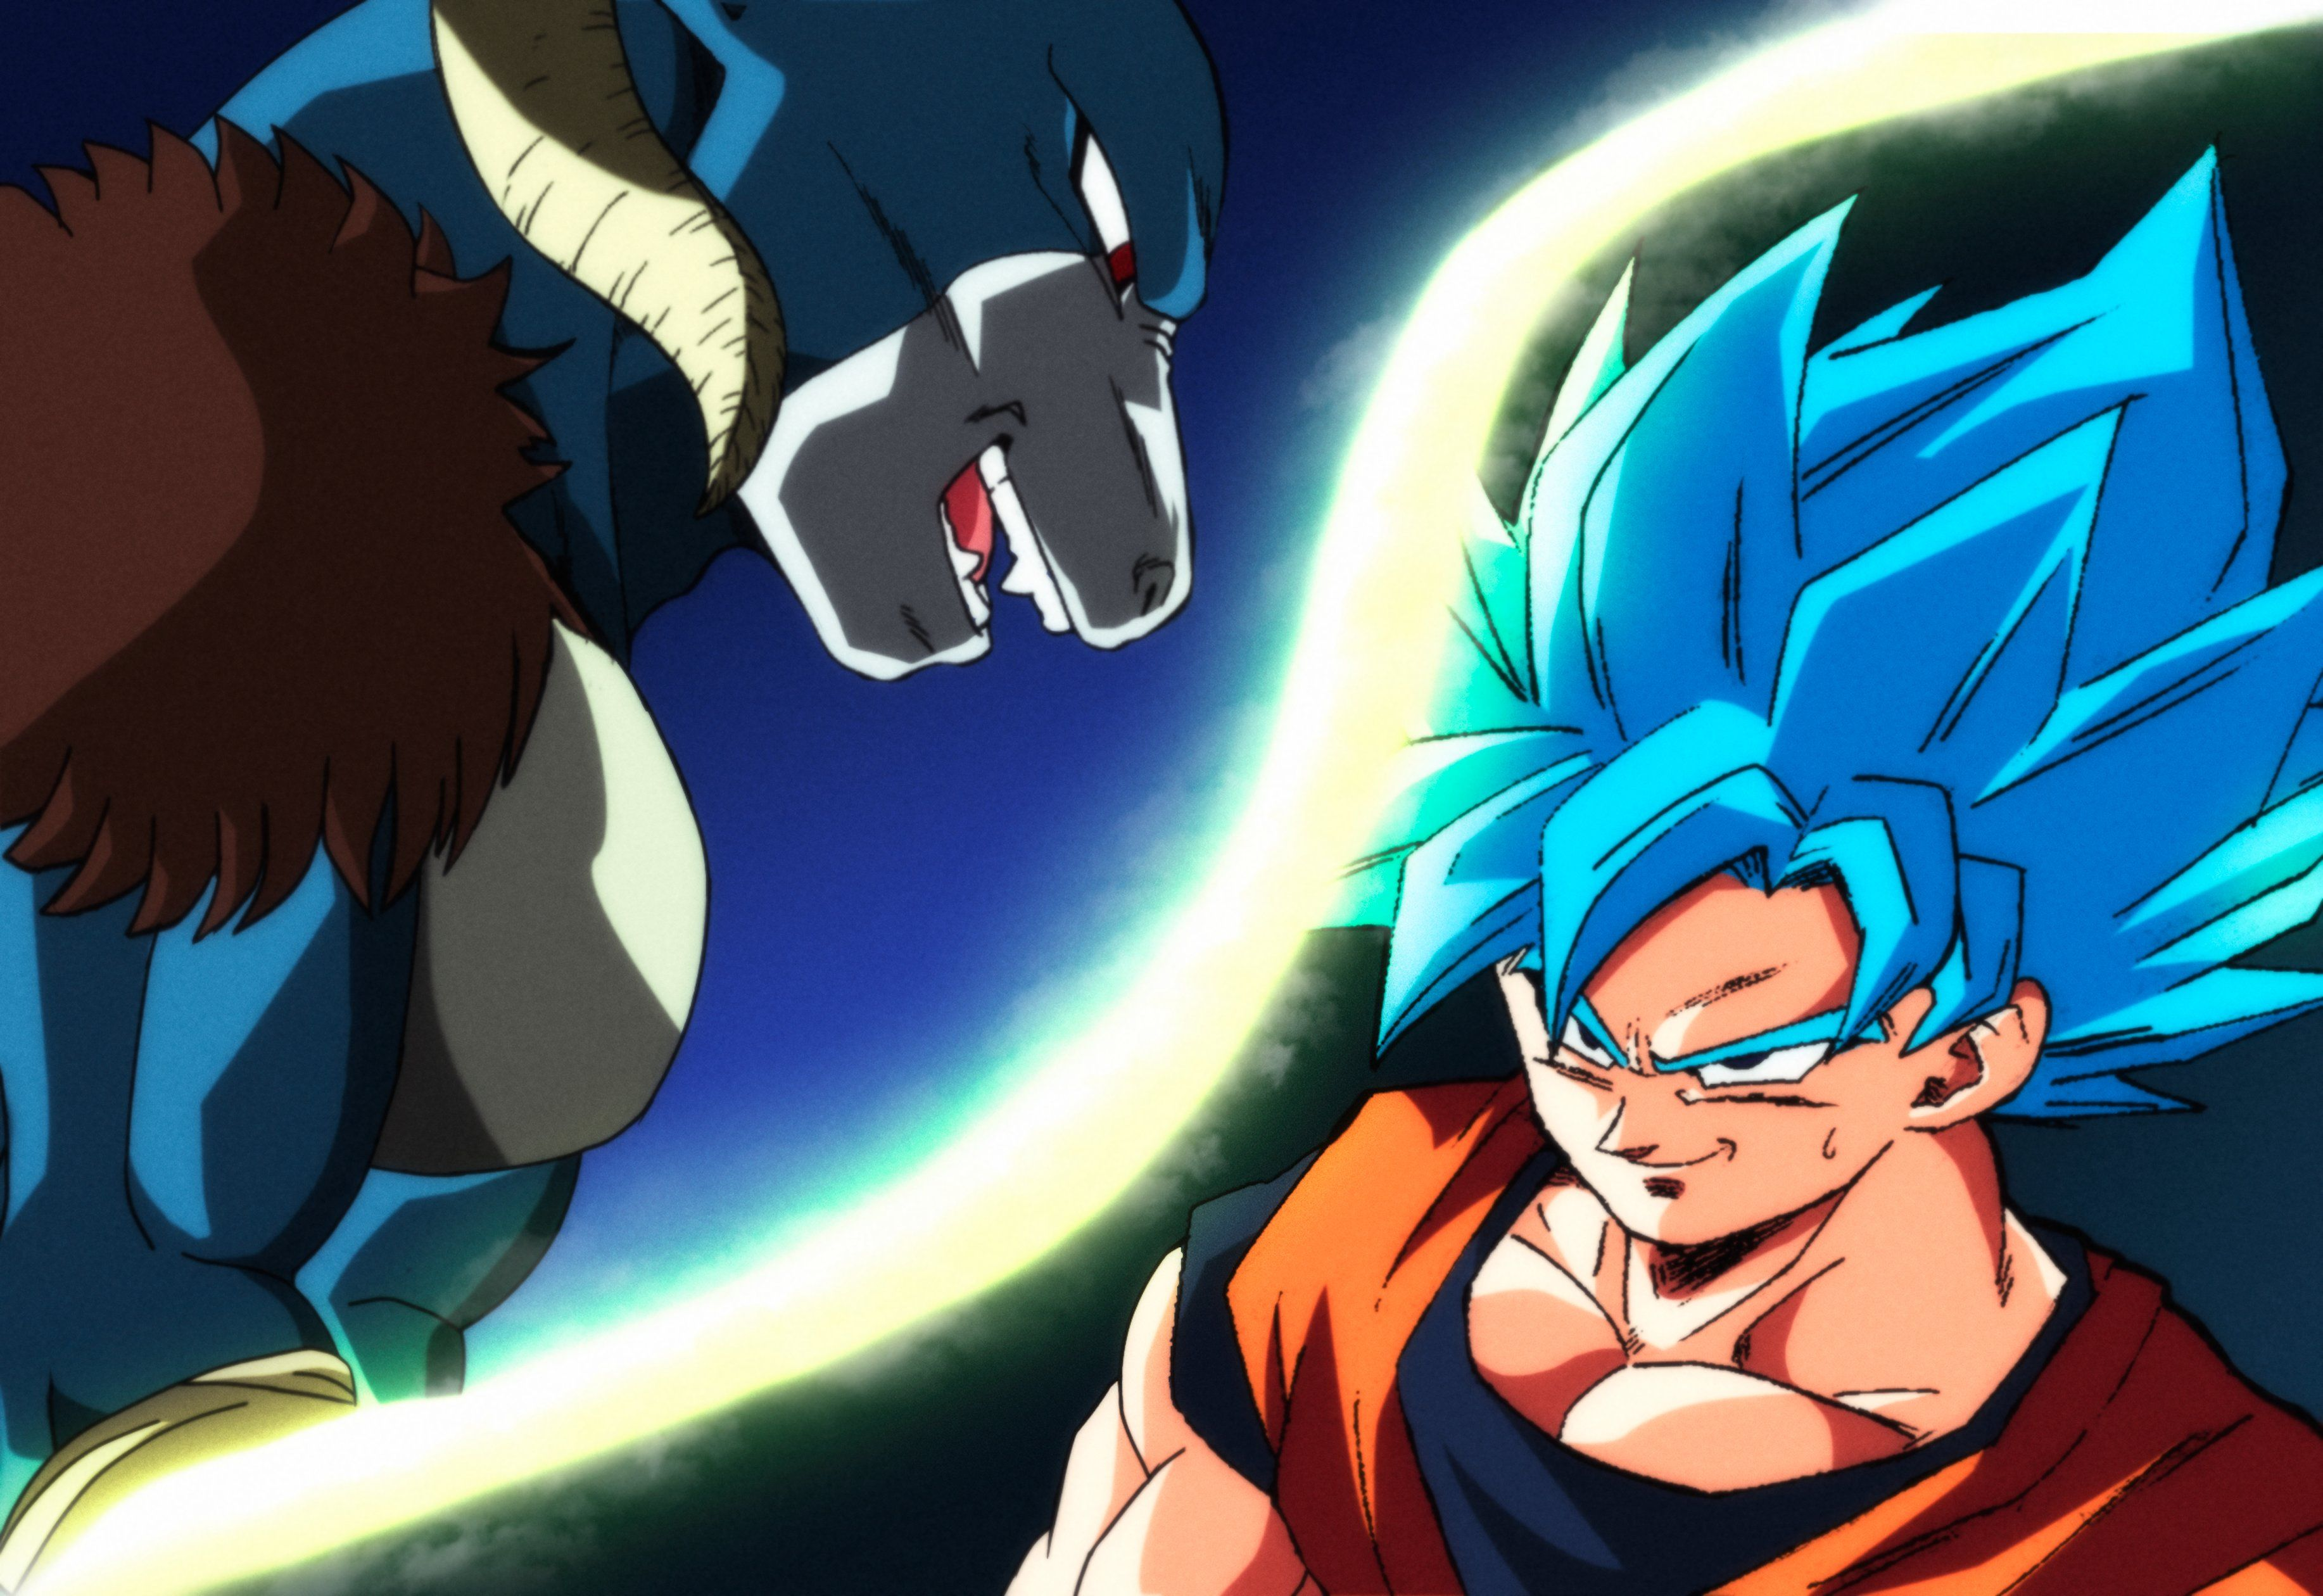 Sir Perfectroy On Twitter Anime Dragon Ball Dragon Ball Art Dragon Ball Artwork